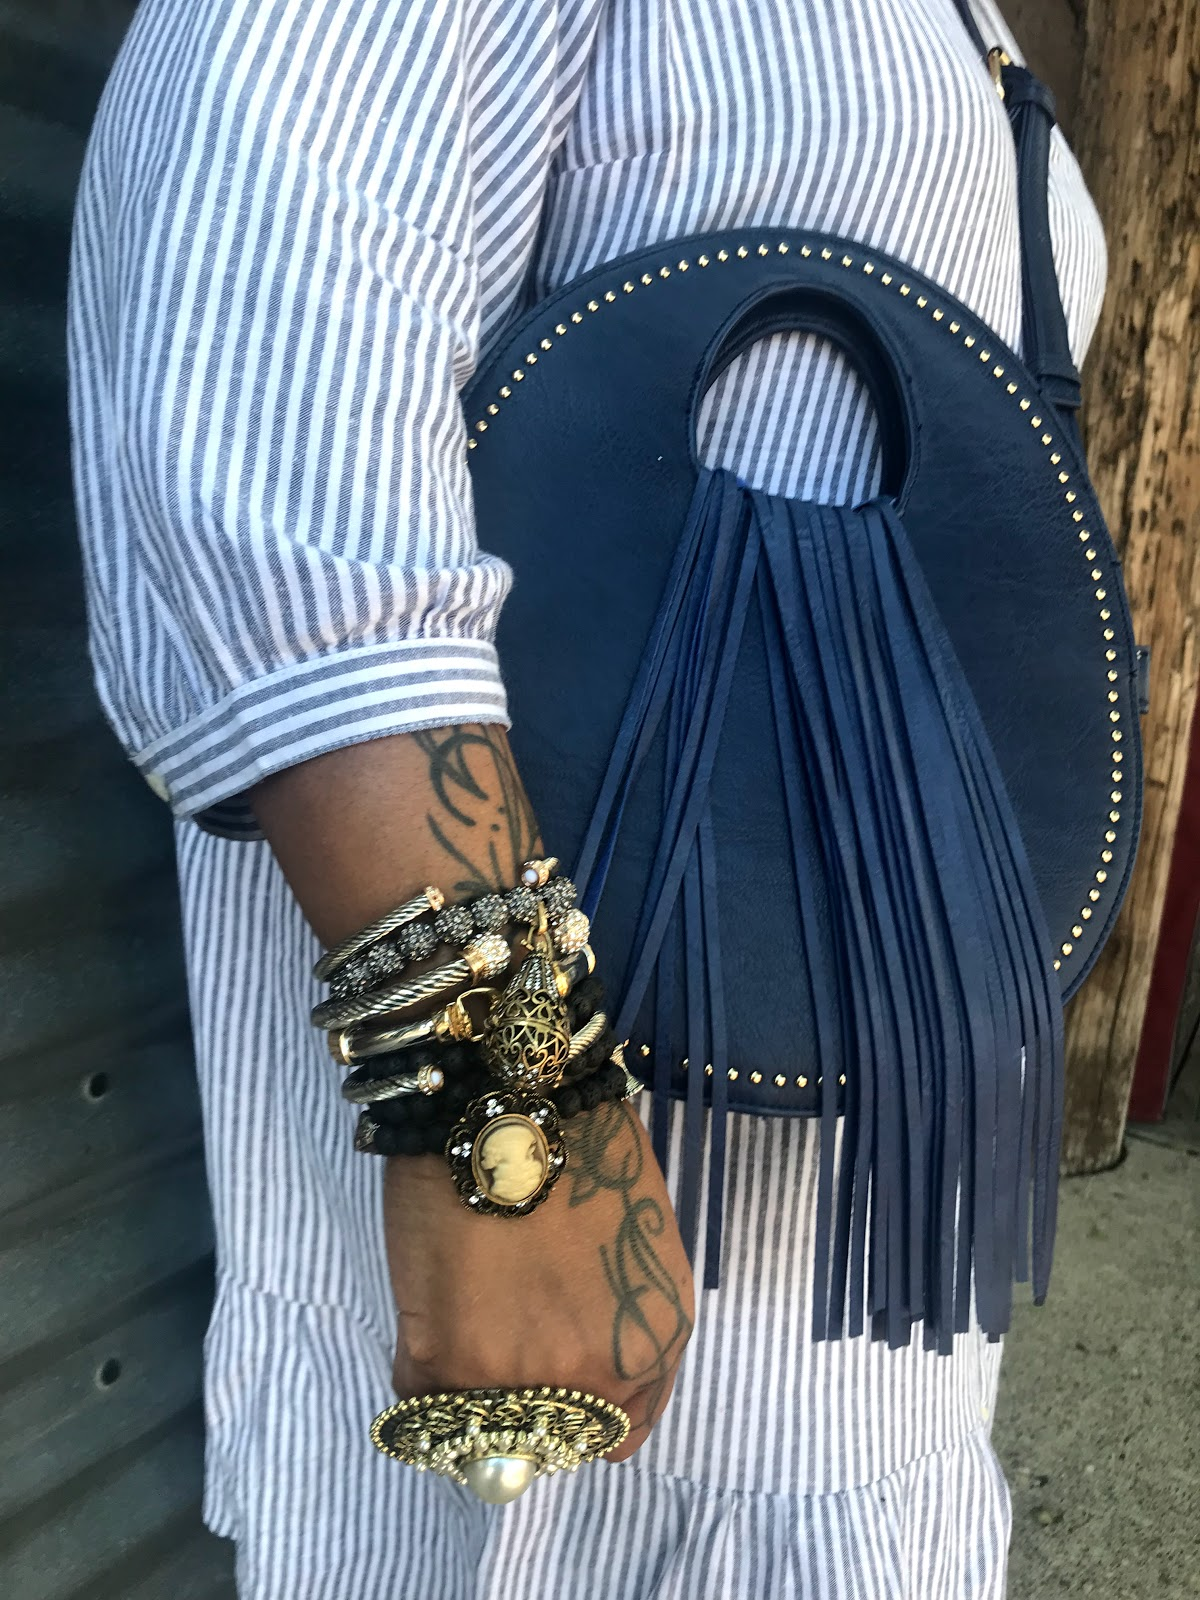 Image: Woman leaning on wall and sharing her story about midlife to motivate others. Tangie Bell is wearing a gold ring, arm bracelets, blue purse with tassels, and a blue and white stripe dress. Seen first on Bits and Babbles blog